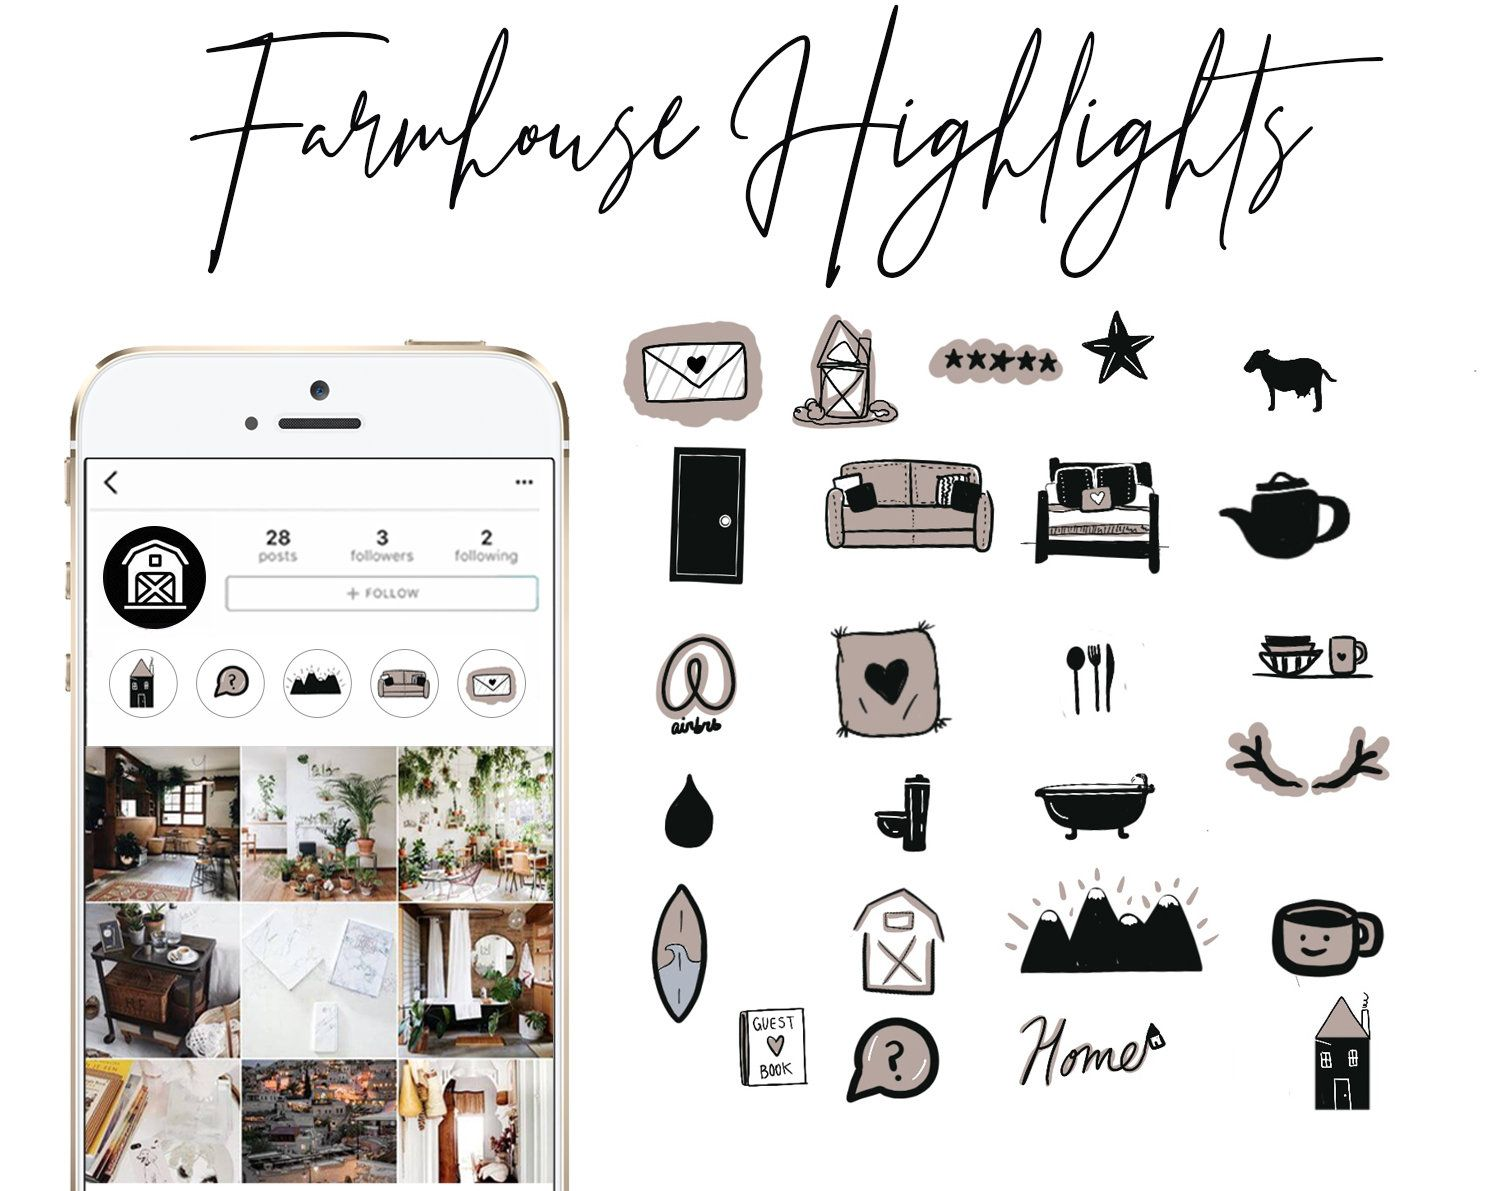 Home Instagram Story Highlight Icons Covers Interior Design